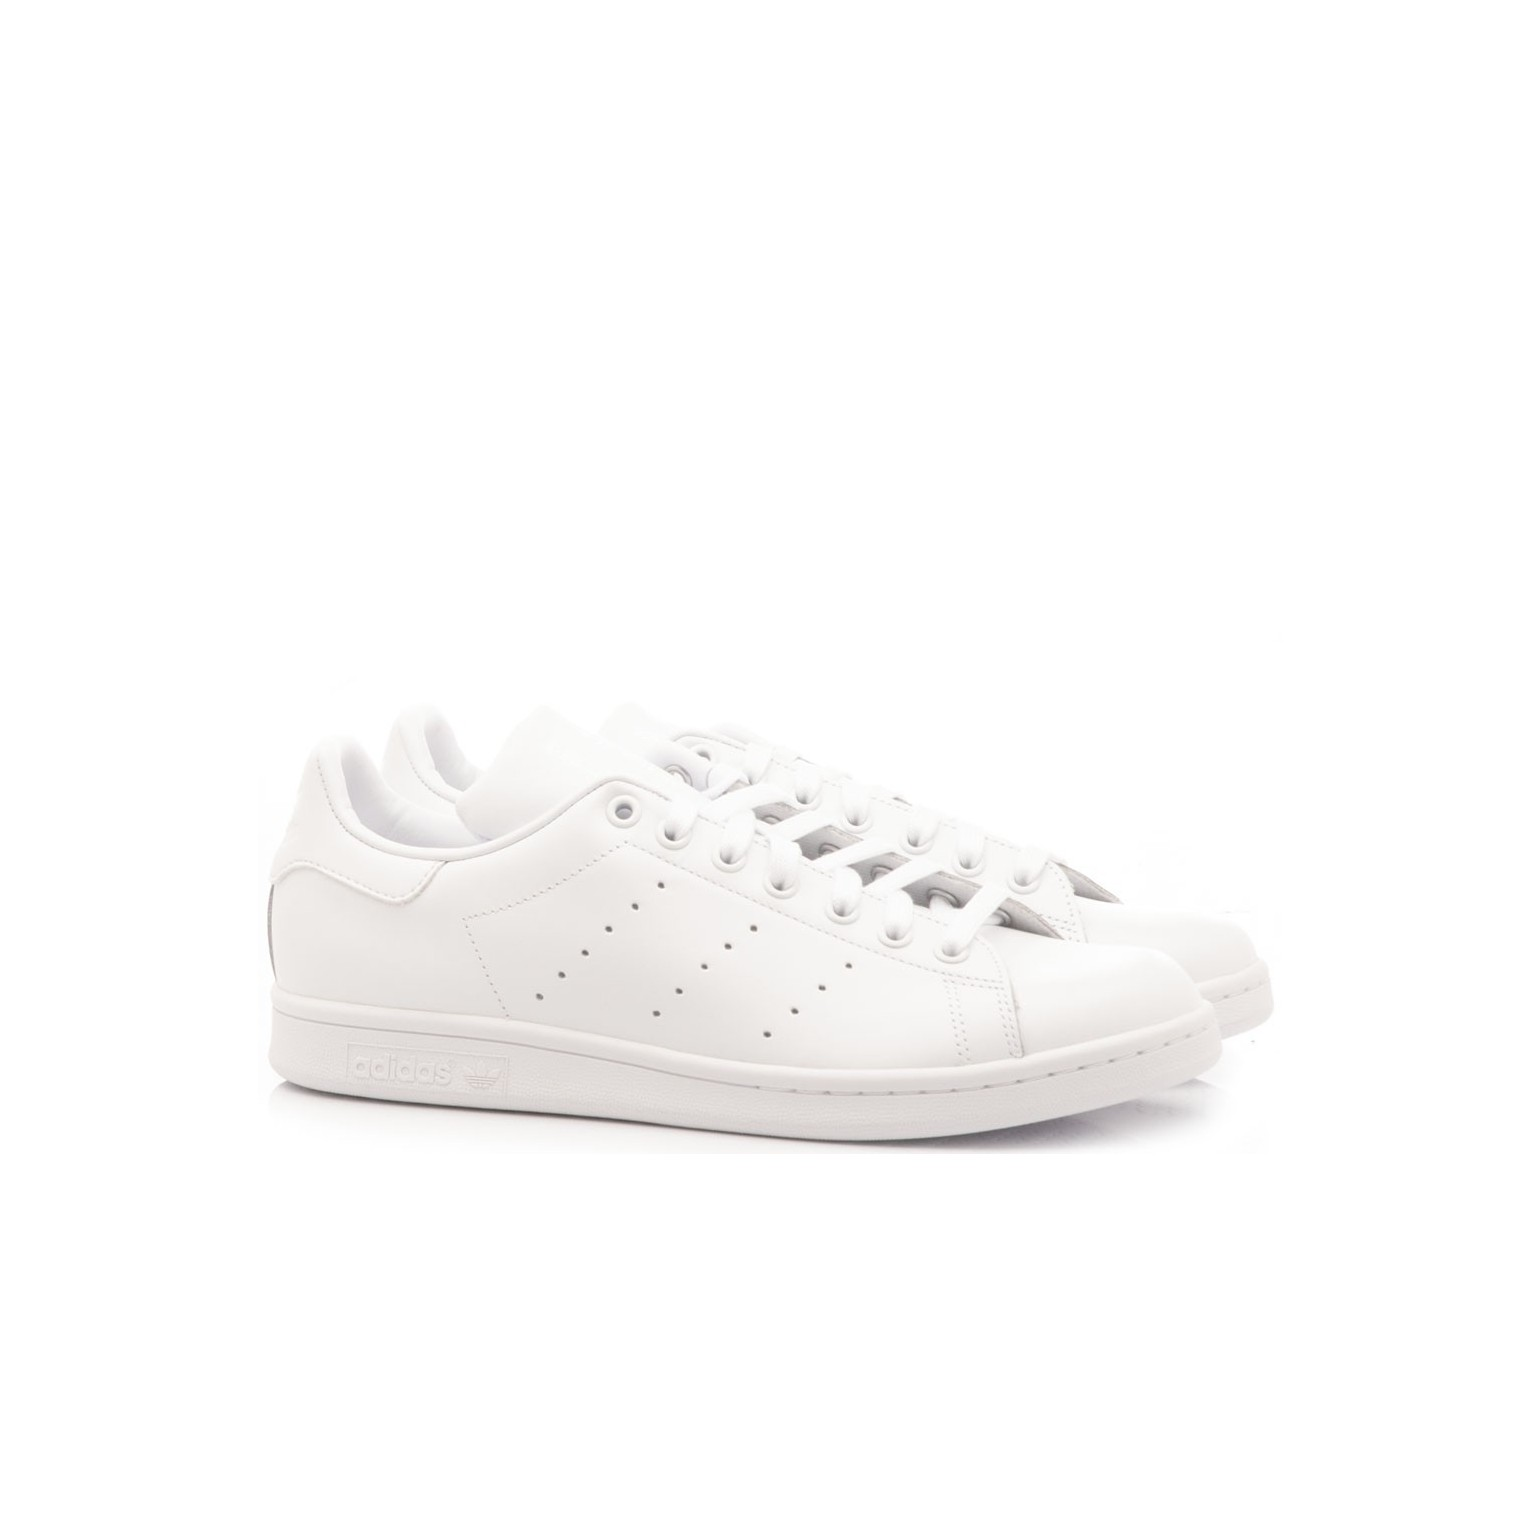 new concept 169b0 cd434 Adidas Men's Sneakers Stan Smith S75104